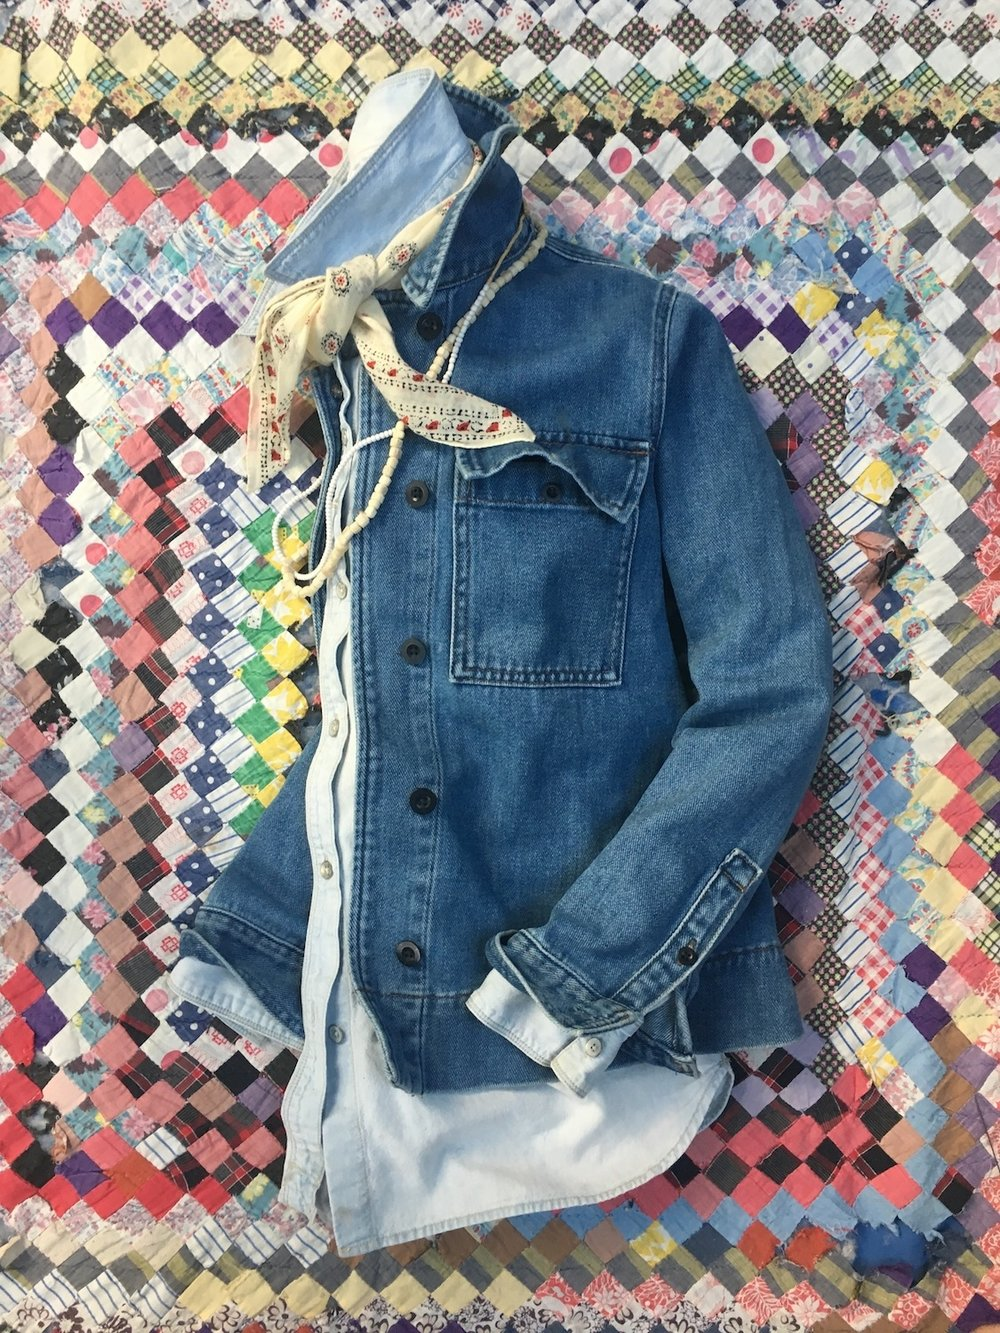 Quilt & Denim Still Life: Fashion Lay-down